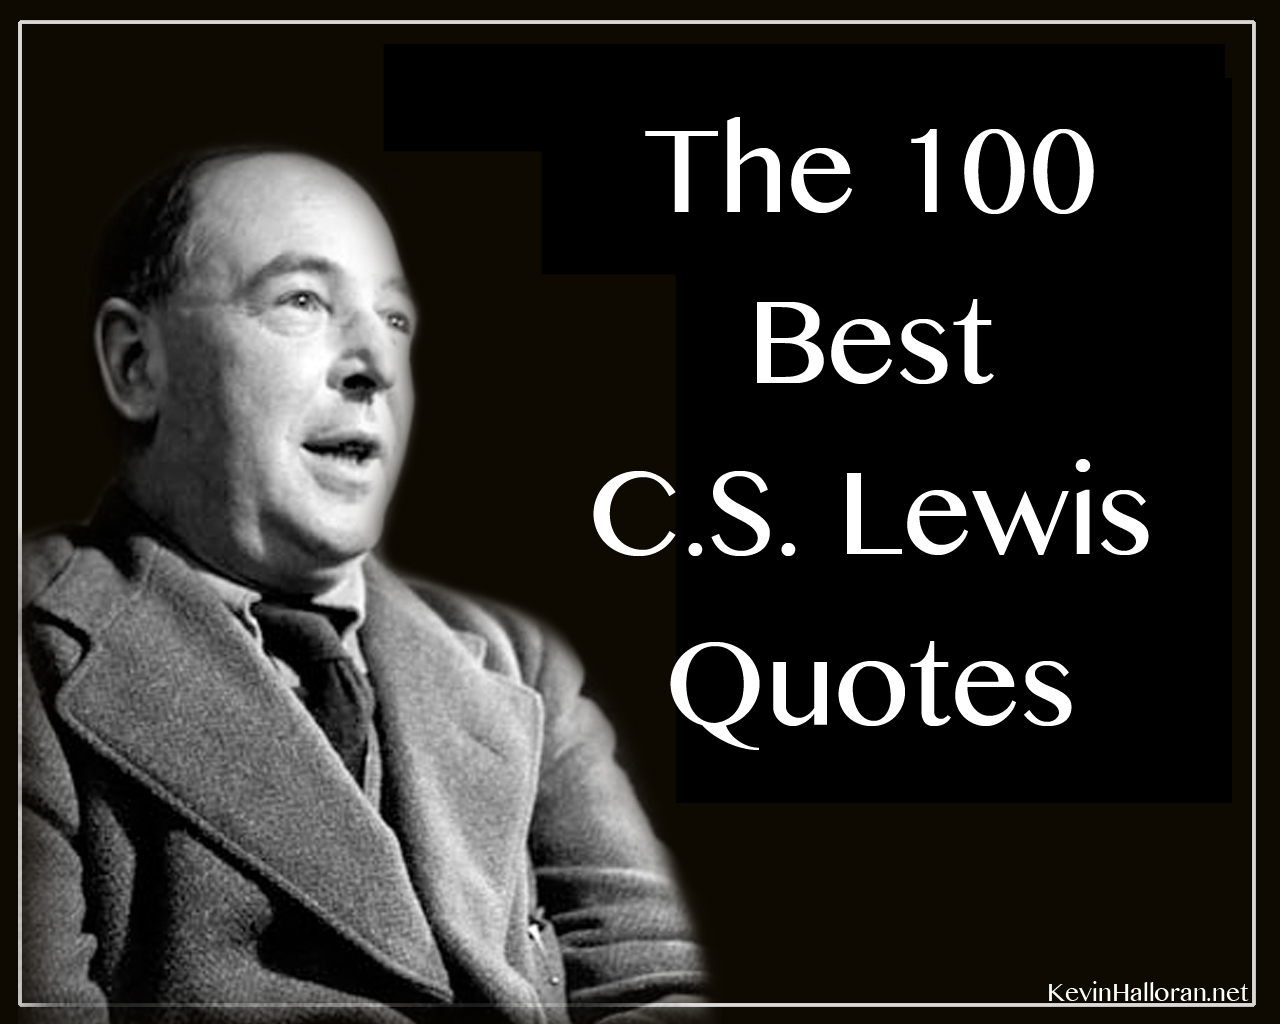 Catholic Quotes On Love The 100 Best C.slewis Quotes  Anchored In Christ